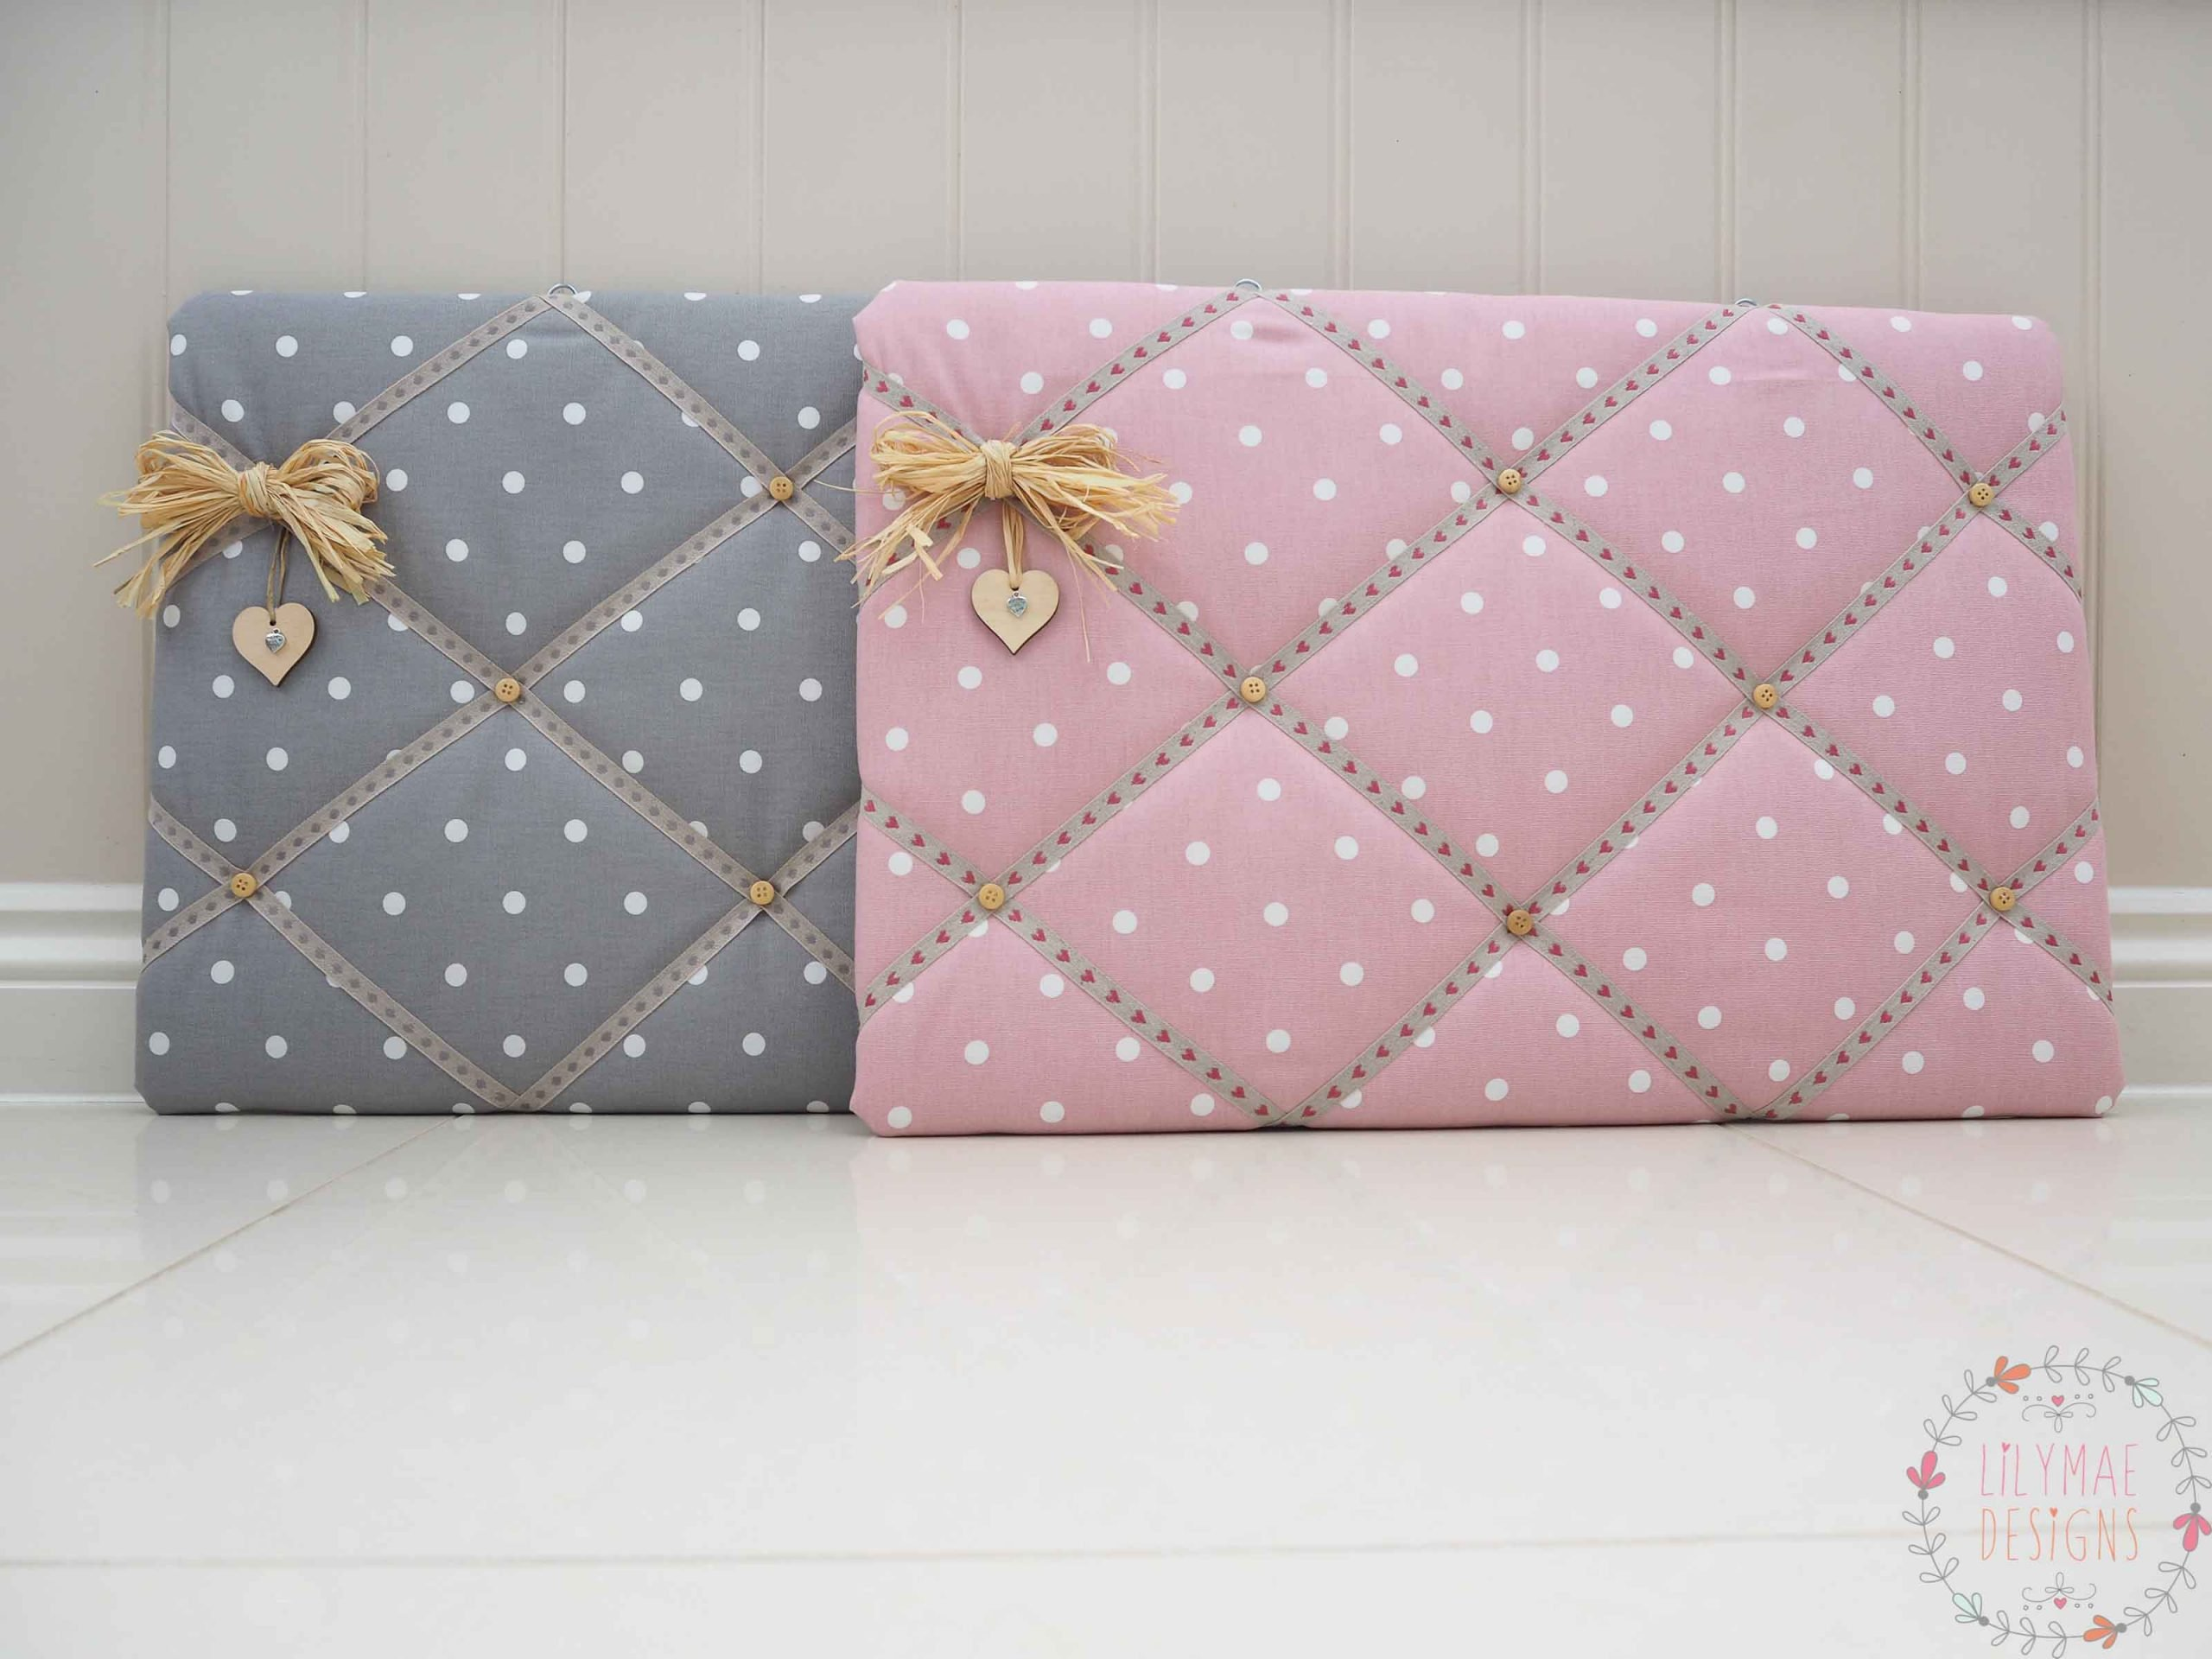 Fabric memo boards handmade to order in Dotty rose and Dotty Smokey Grey. Kitchen Notice board, Christmas present for mum. Lilymae Designs Price List